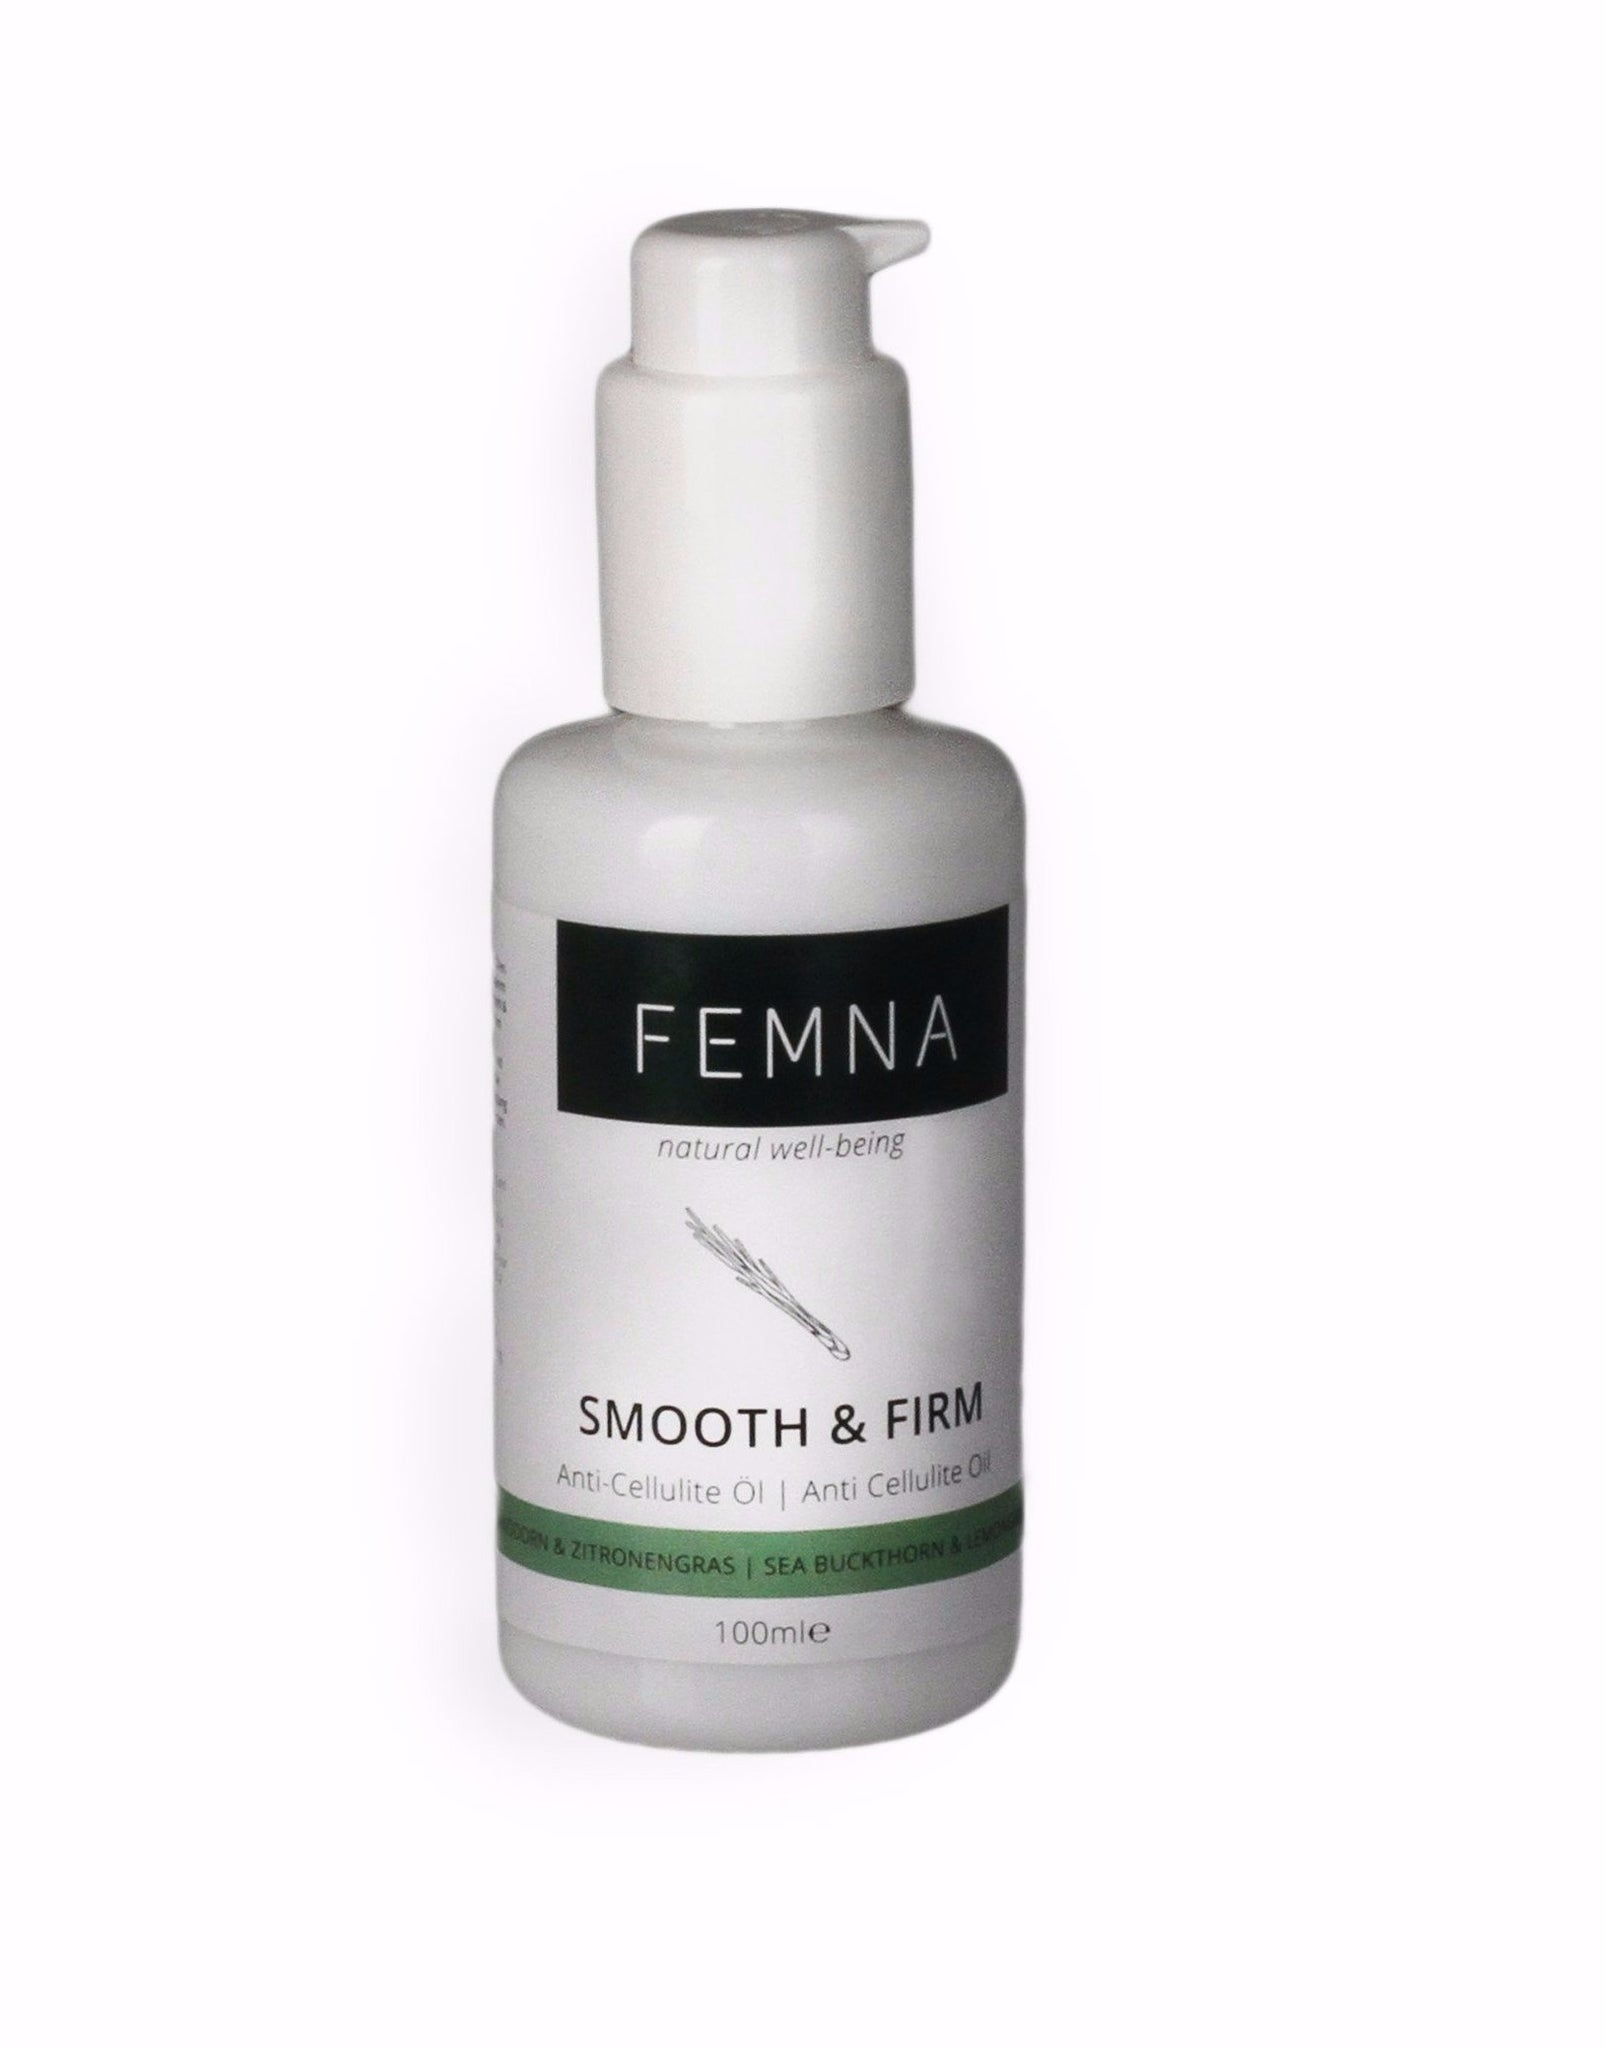 Femna Smooth & Firm Körperöl (100ml) Anti-Cellulite Bio Öl